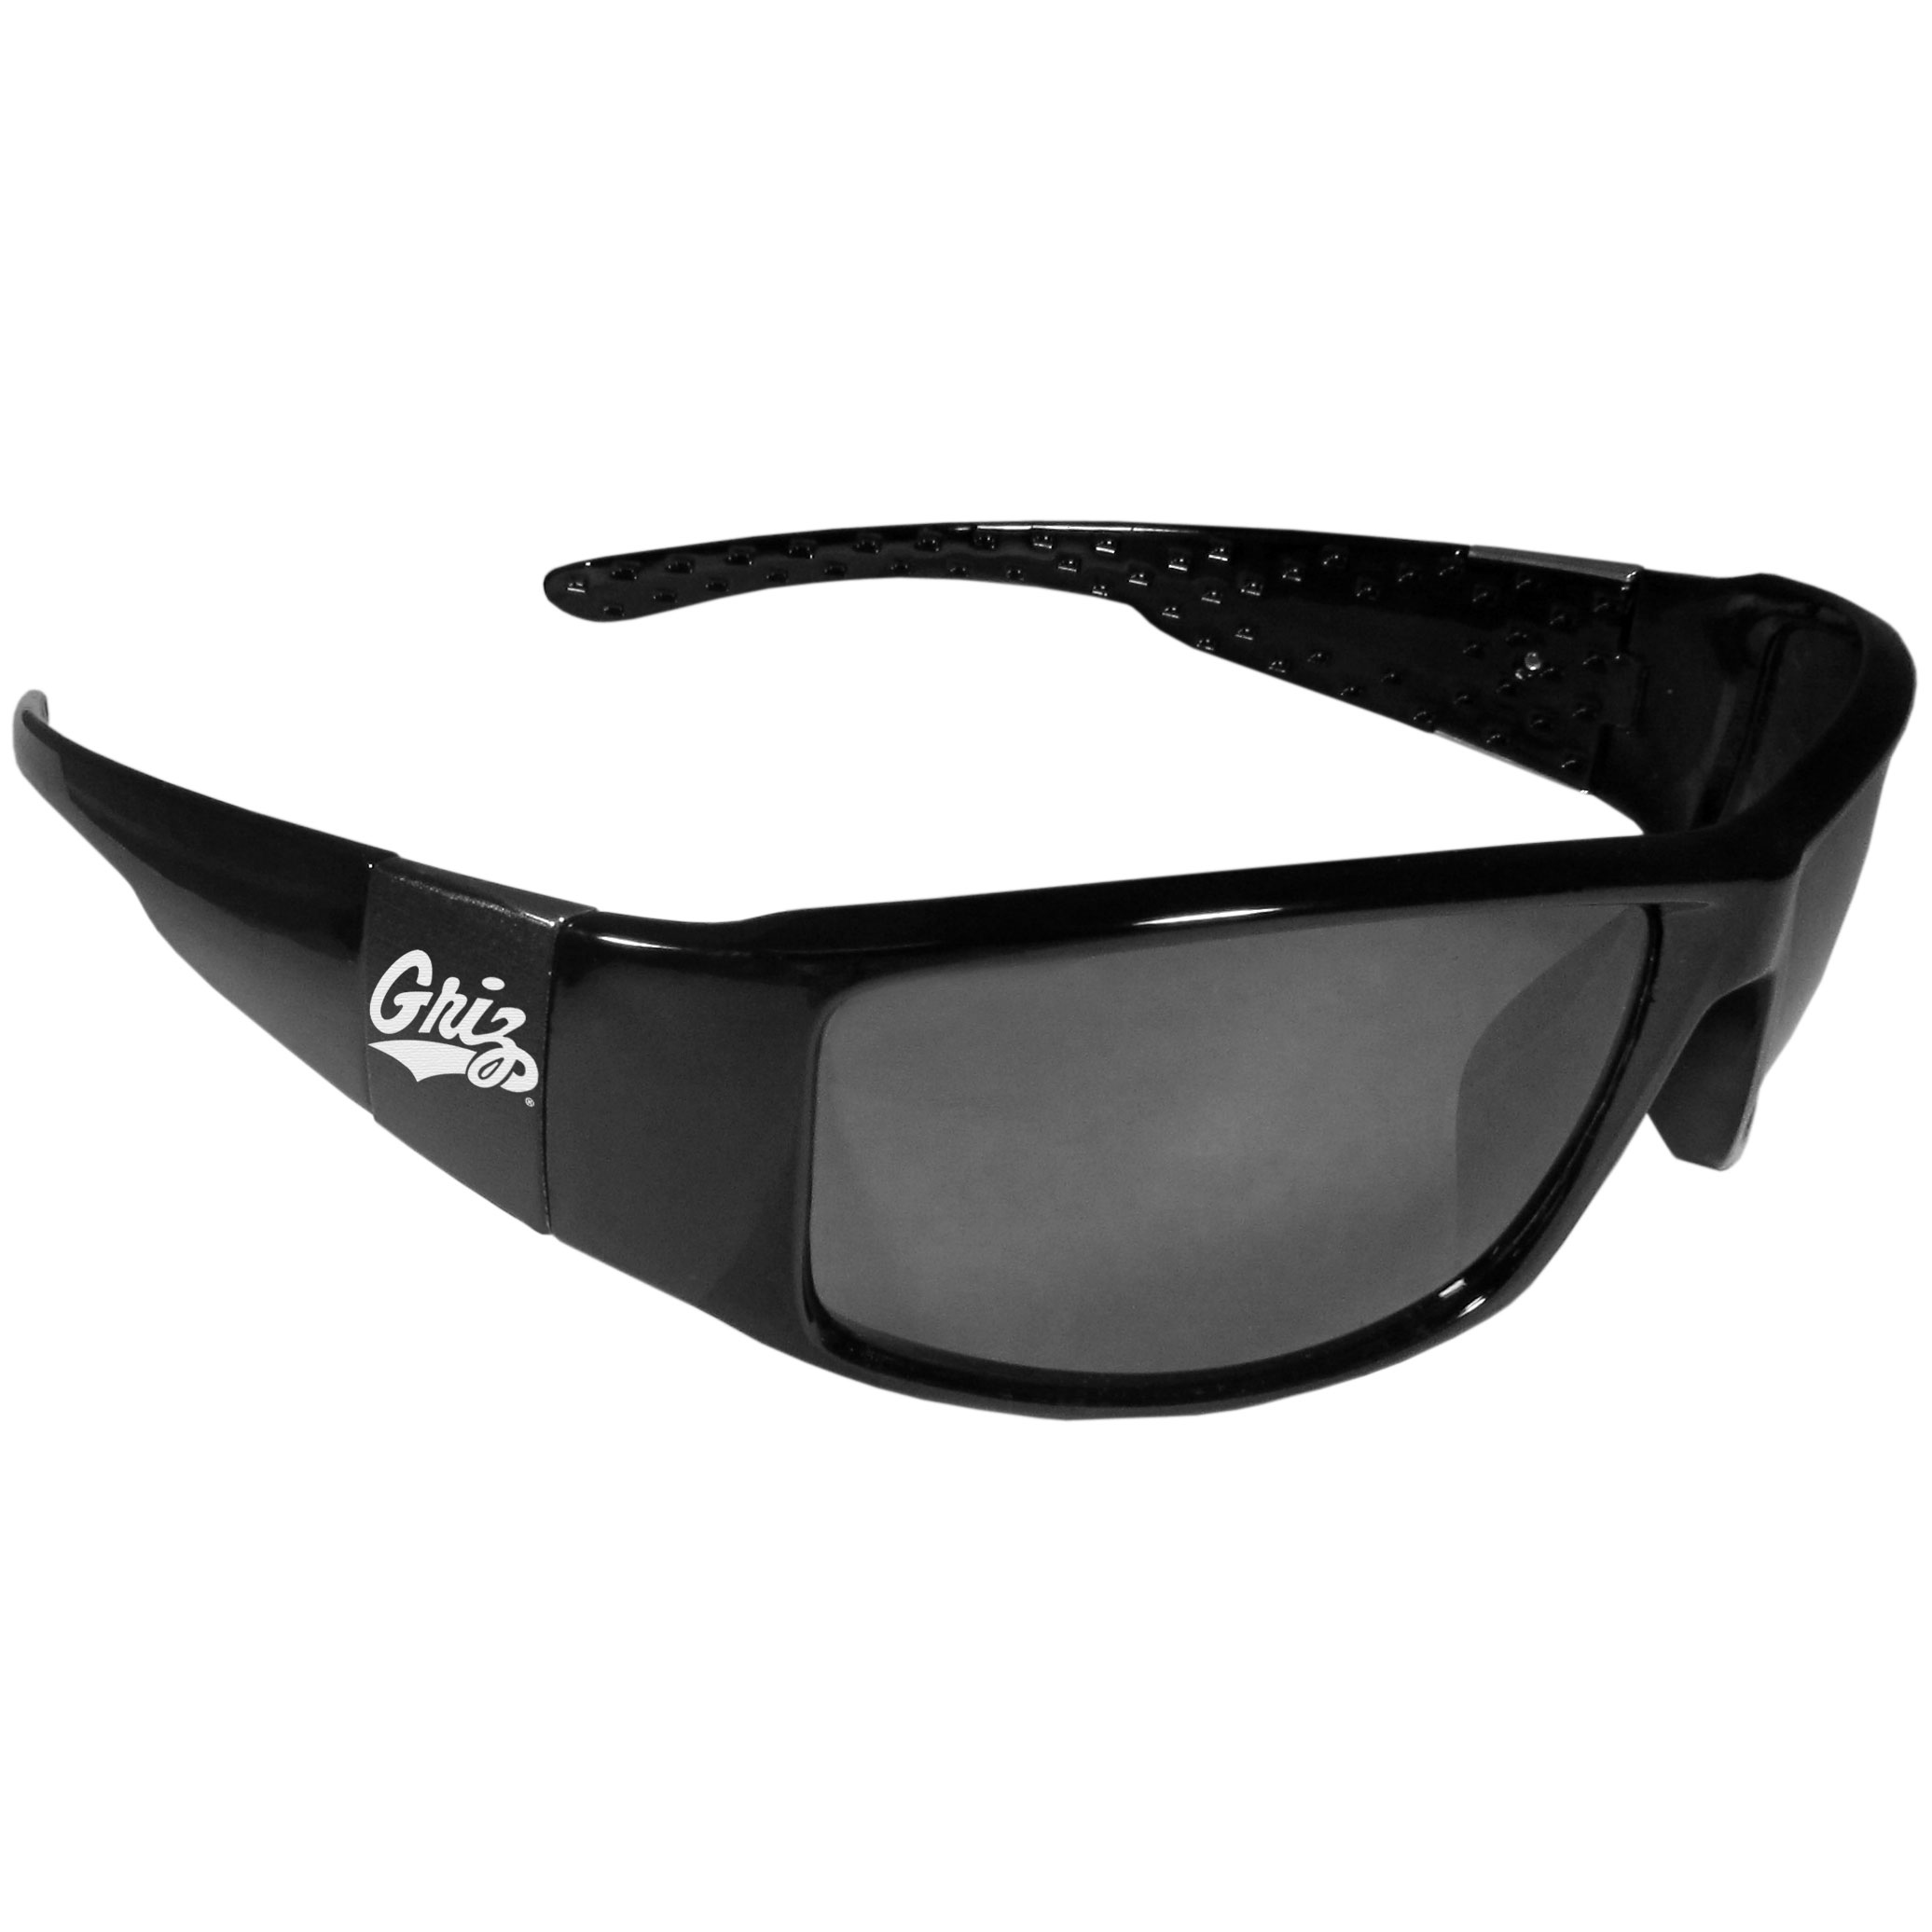 Montana Grizzlies Black Wrap Sunglasses - These designer inspired frames have a sleek look in all black with  Montana Grizzlies shields on each arm with a printed logo. The shades are perfect for any outdoor activity like; golfing, driving, hiking, fishing or cheering on the team at a tailgating event or at a home game day BBQ with a lens rating of 100% UVA/UVB for maximum UV protection. The high-quality frames are as durable as they are fashionable and with their classic look they are the perfect fan accessory that can be worn everyday for every occasion.